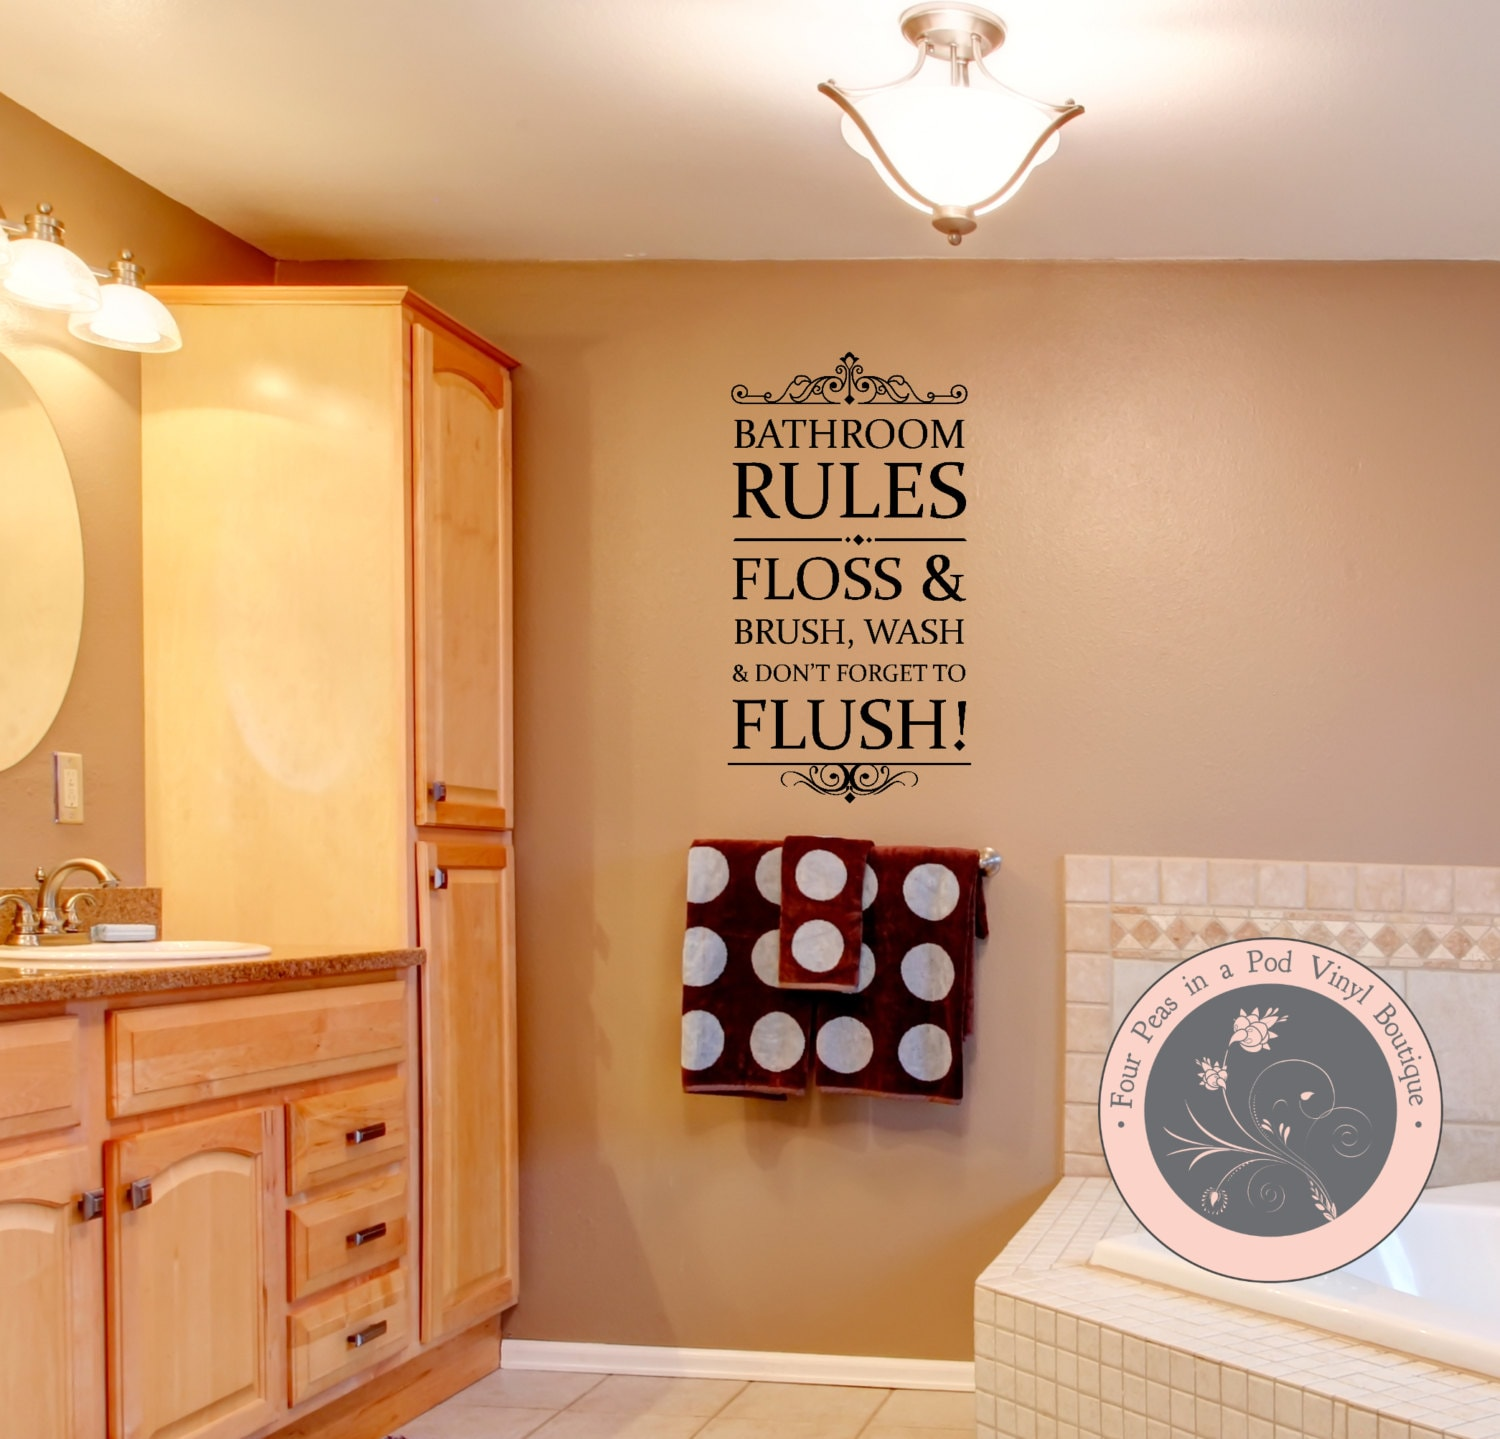 Bathroom rules wall decal bathroom decor by for Bathroom decor rules